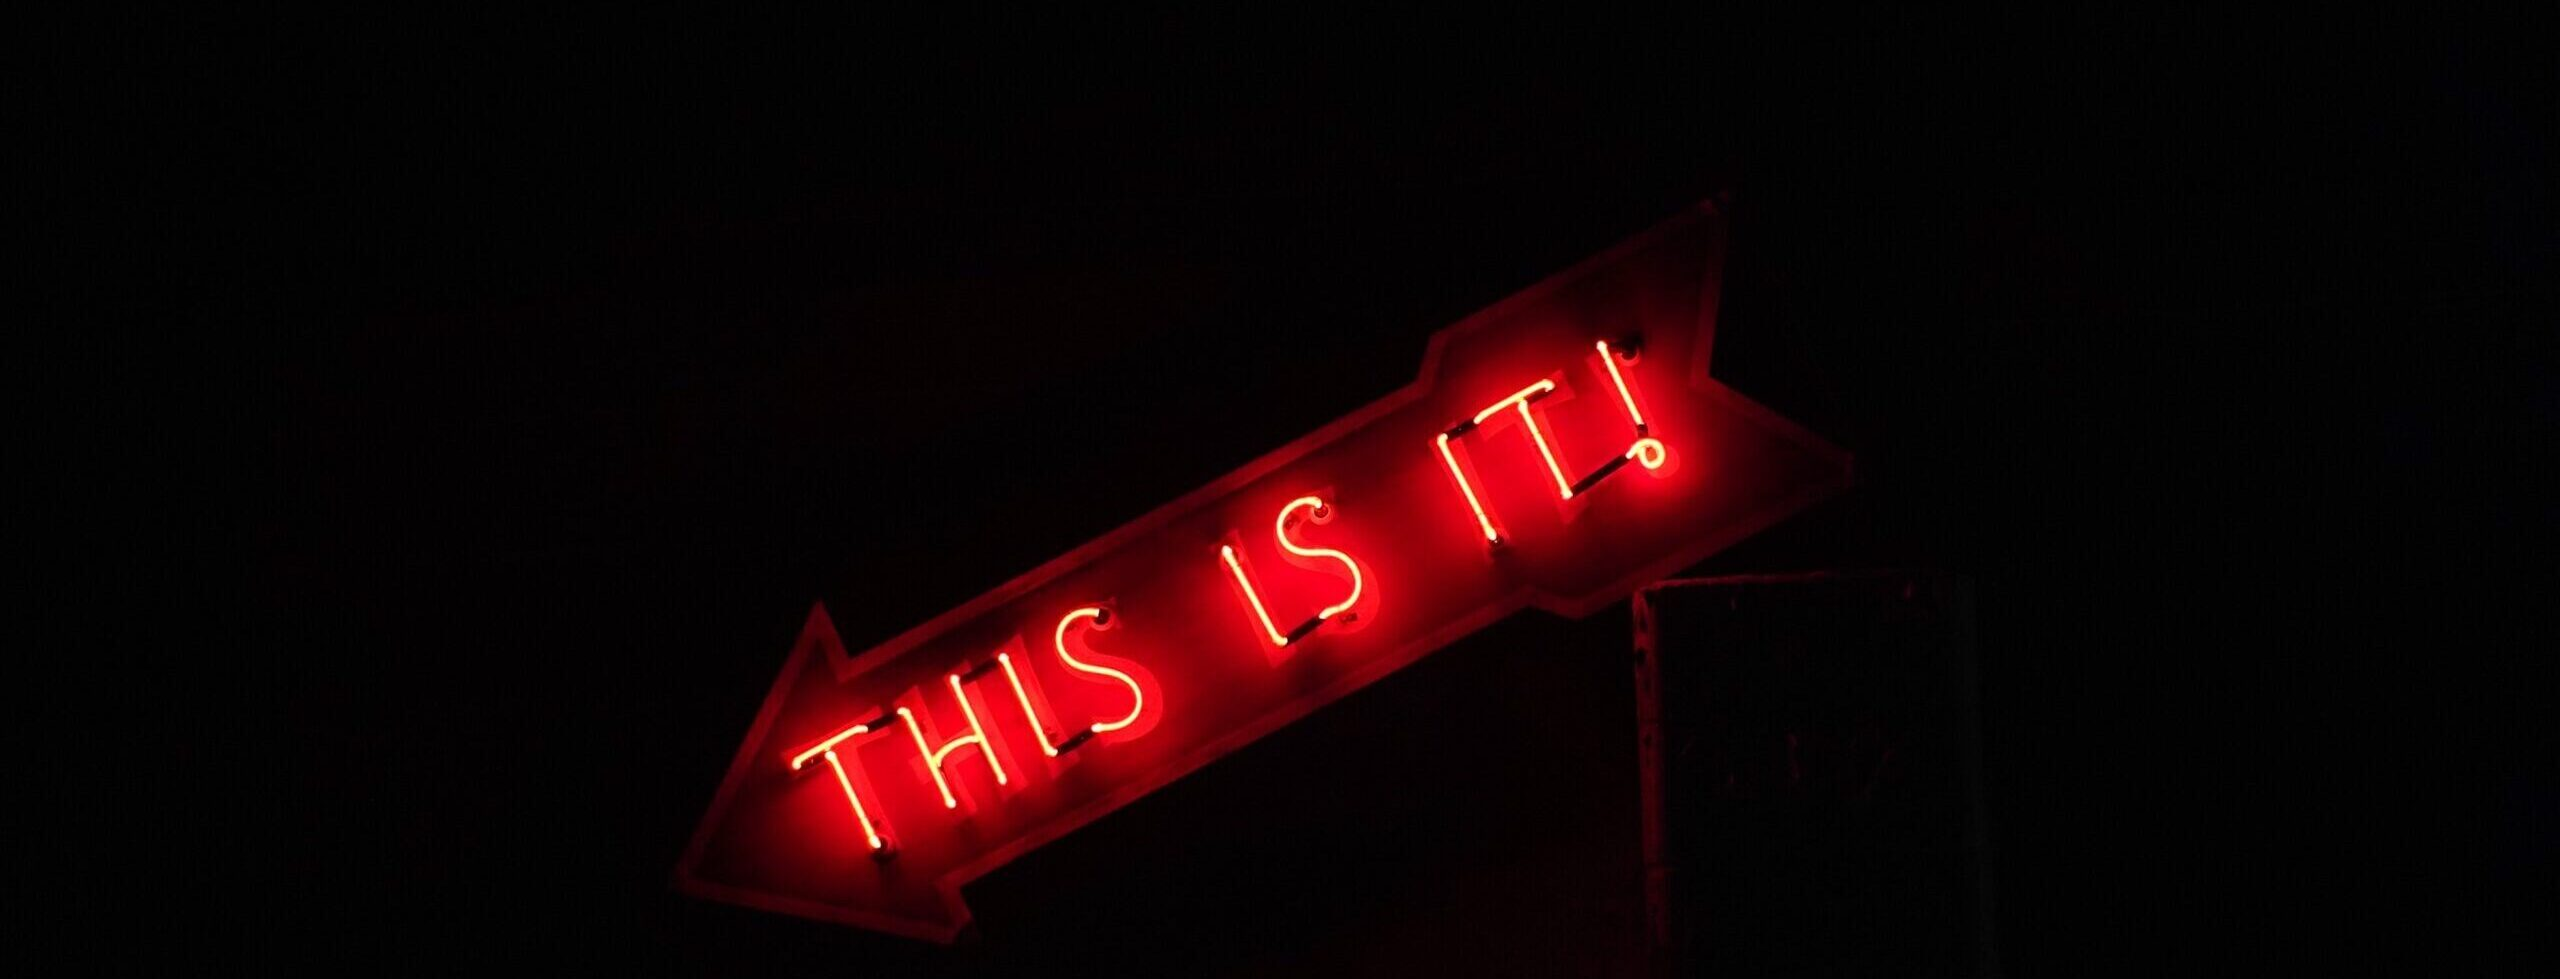 Neon sign reading 'This Is It!' - cropped - Rachel Writes email and e-newsletter writing service